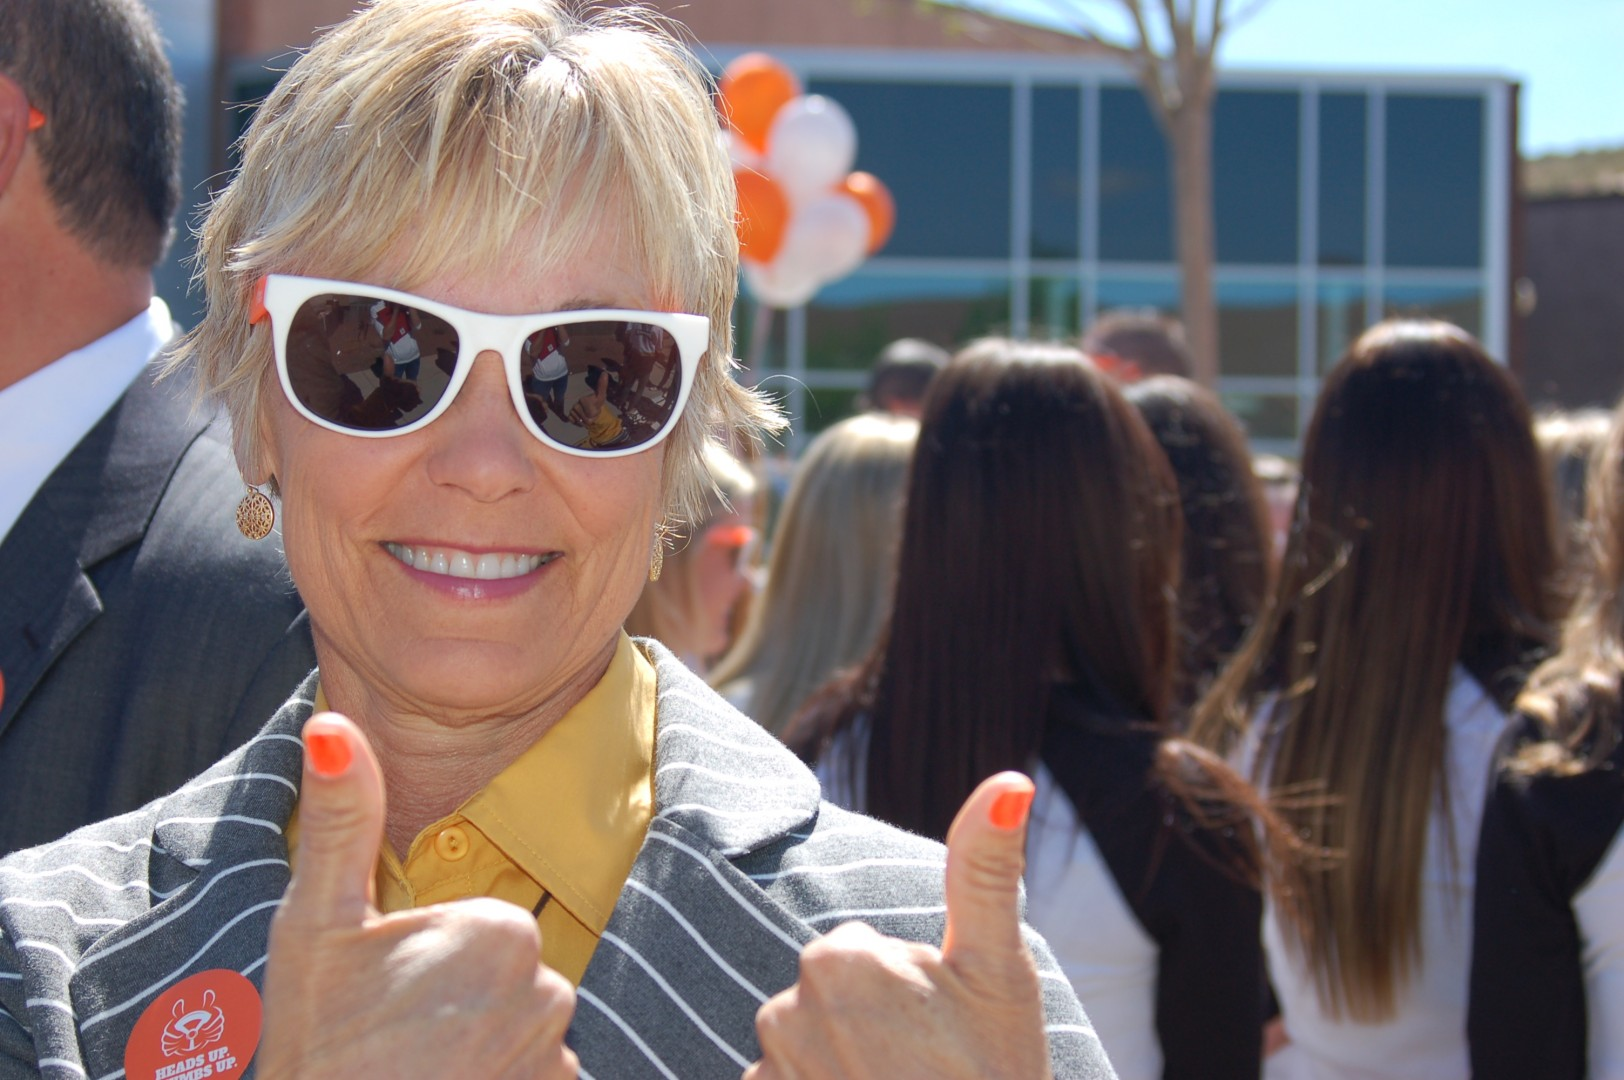 """Leslee Henson, a St. George resident whose husband was killed by a distracted driver a year ago, shows off her orange thumbnails promoting """"Heads Up, Thumbs Up Day,"""" at a press conference at Desert Hills High School, St. George, Utah, April 3, 2014 